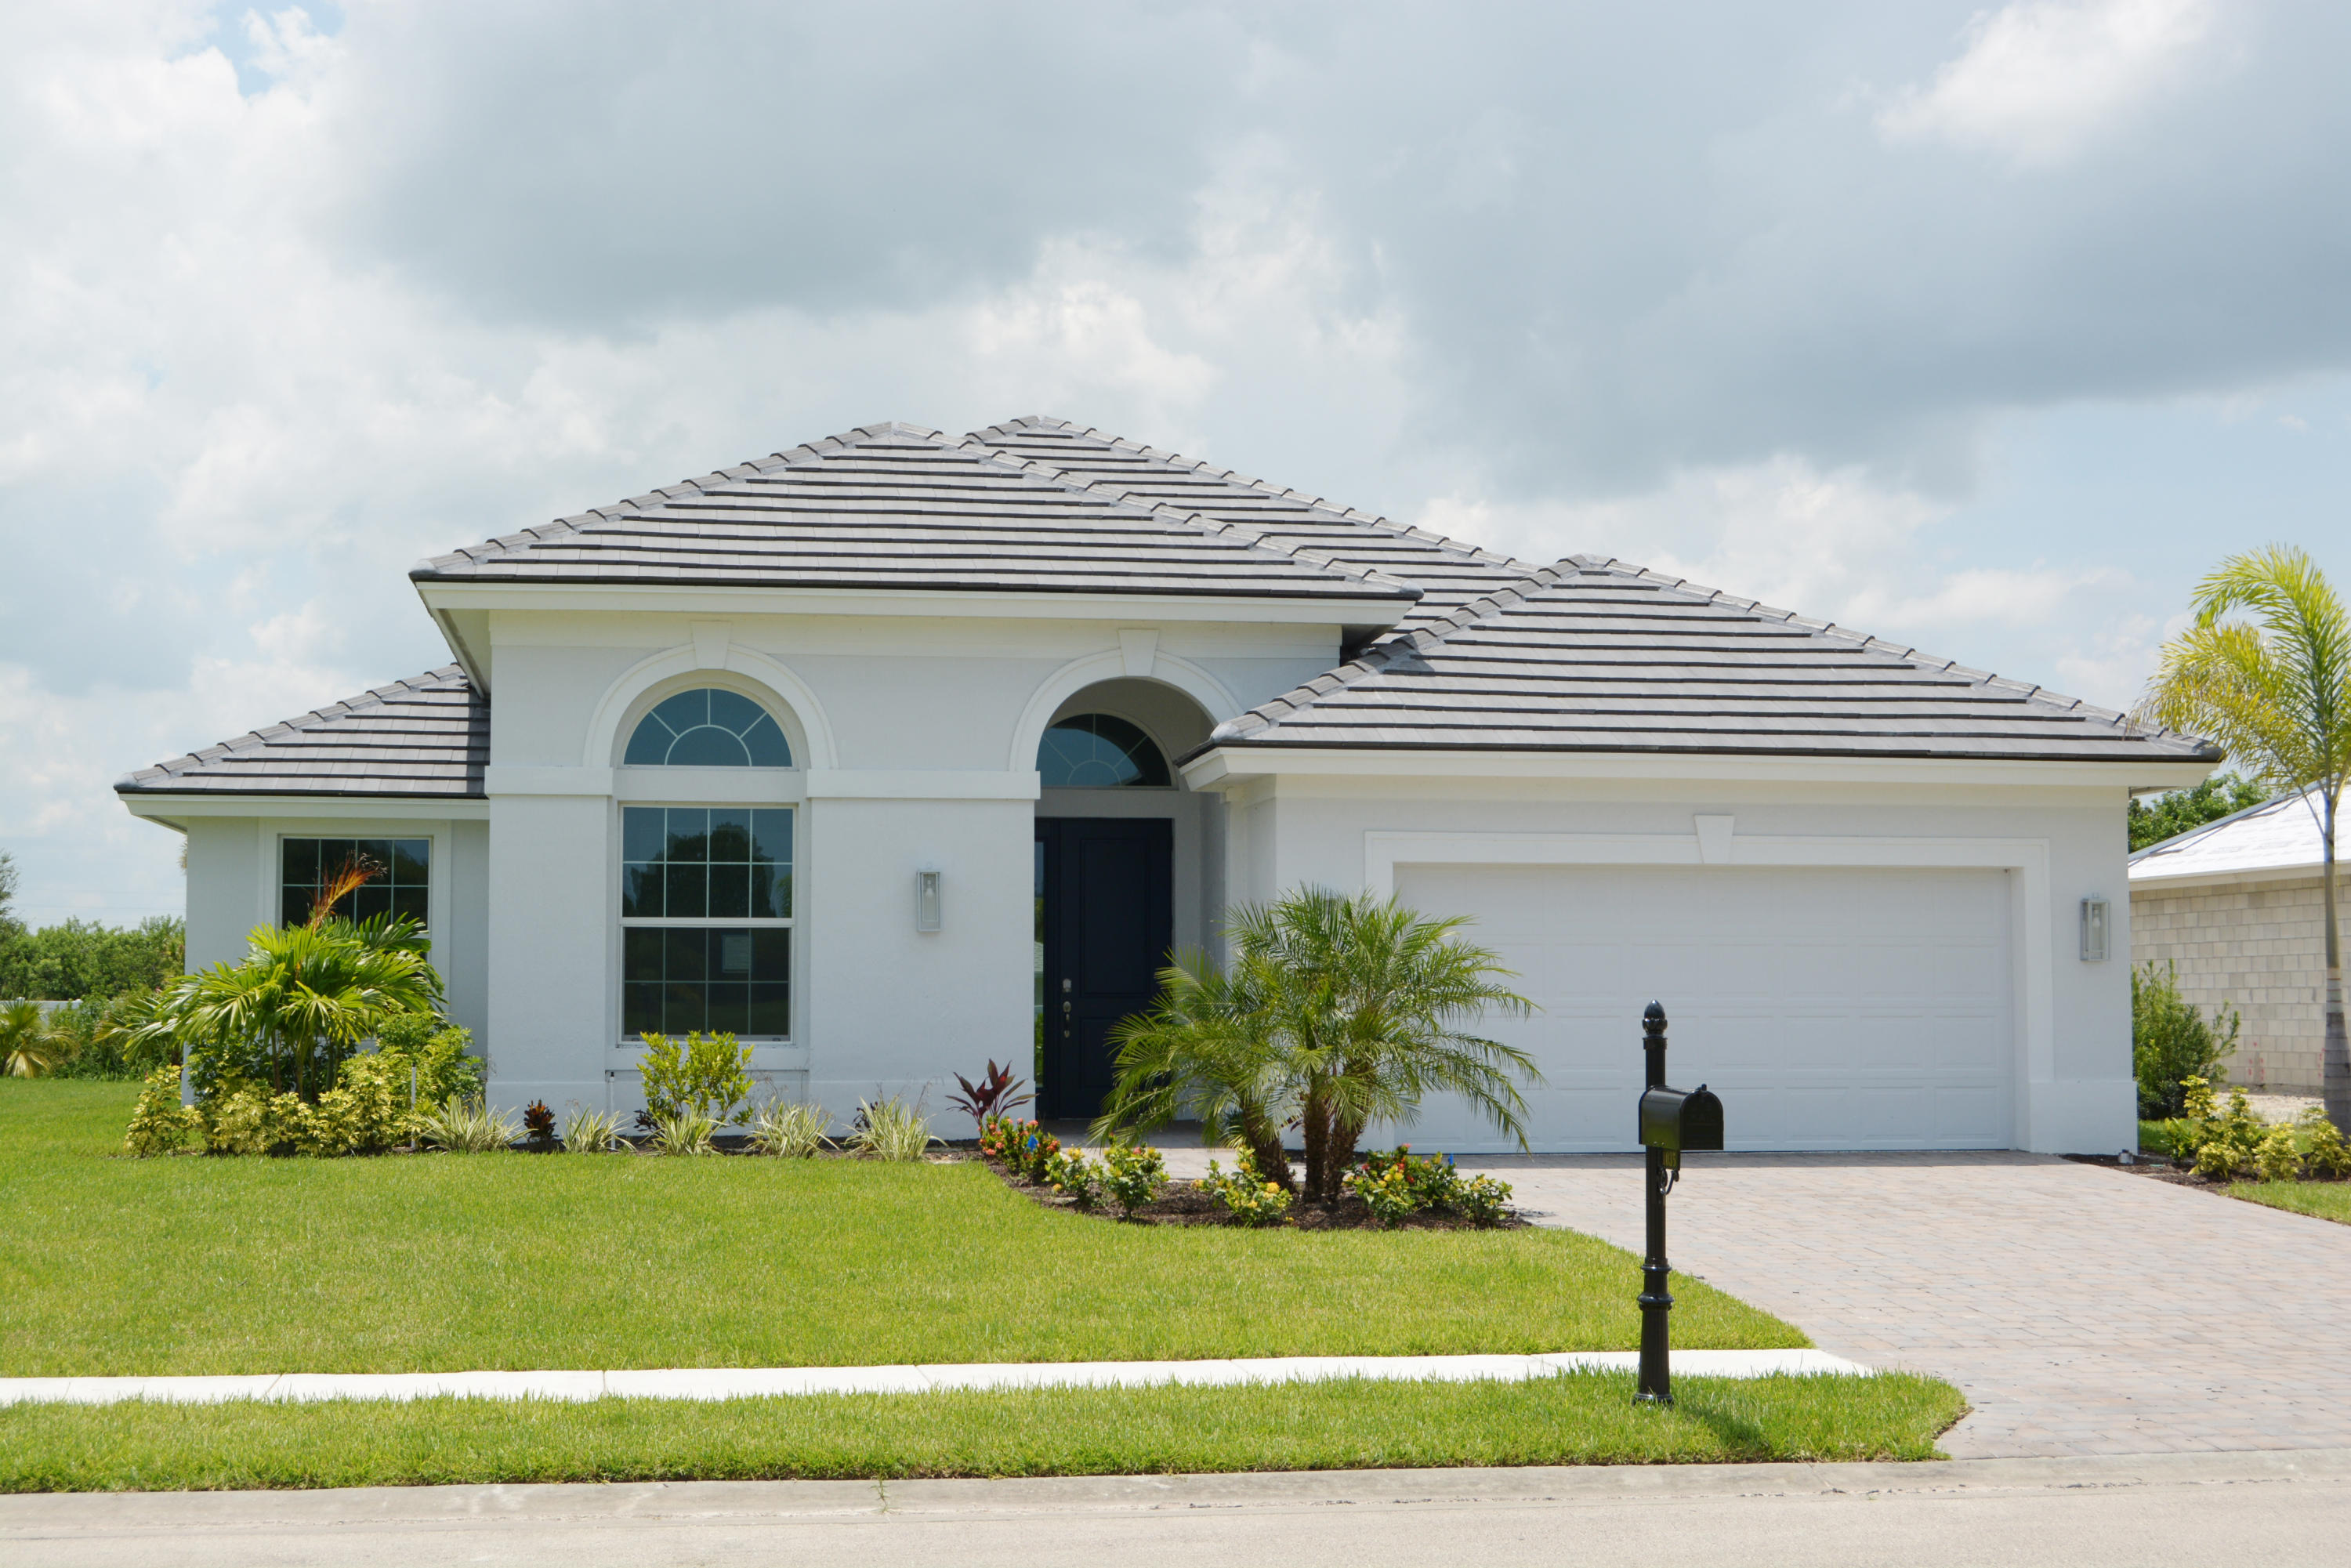 This GHO Homes model is ready to move in NOW! Beautiful Lisbon - 2 BR + Den, 2.5 Baths, Workshop in Garage! Tile throughout! Upgraded stainless steel kitchen appliances, double oven w/convection & fan hood, French door refrigerator dishwasher, Subway tile backsplash & island! Wooded & private lot!